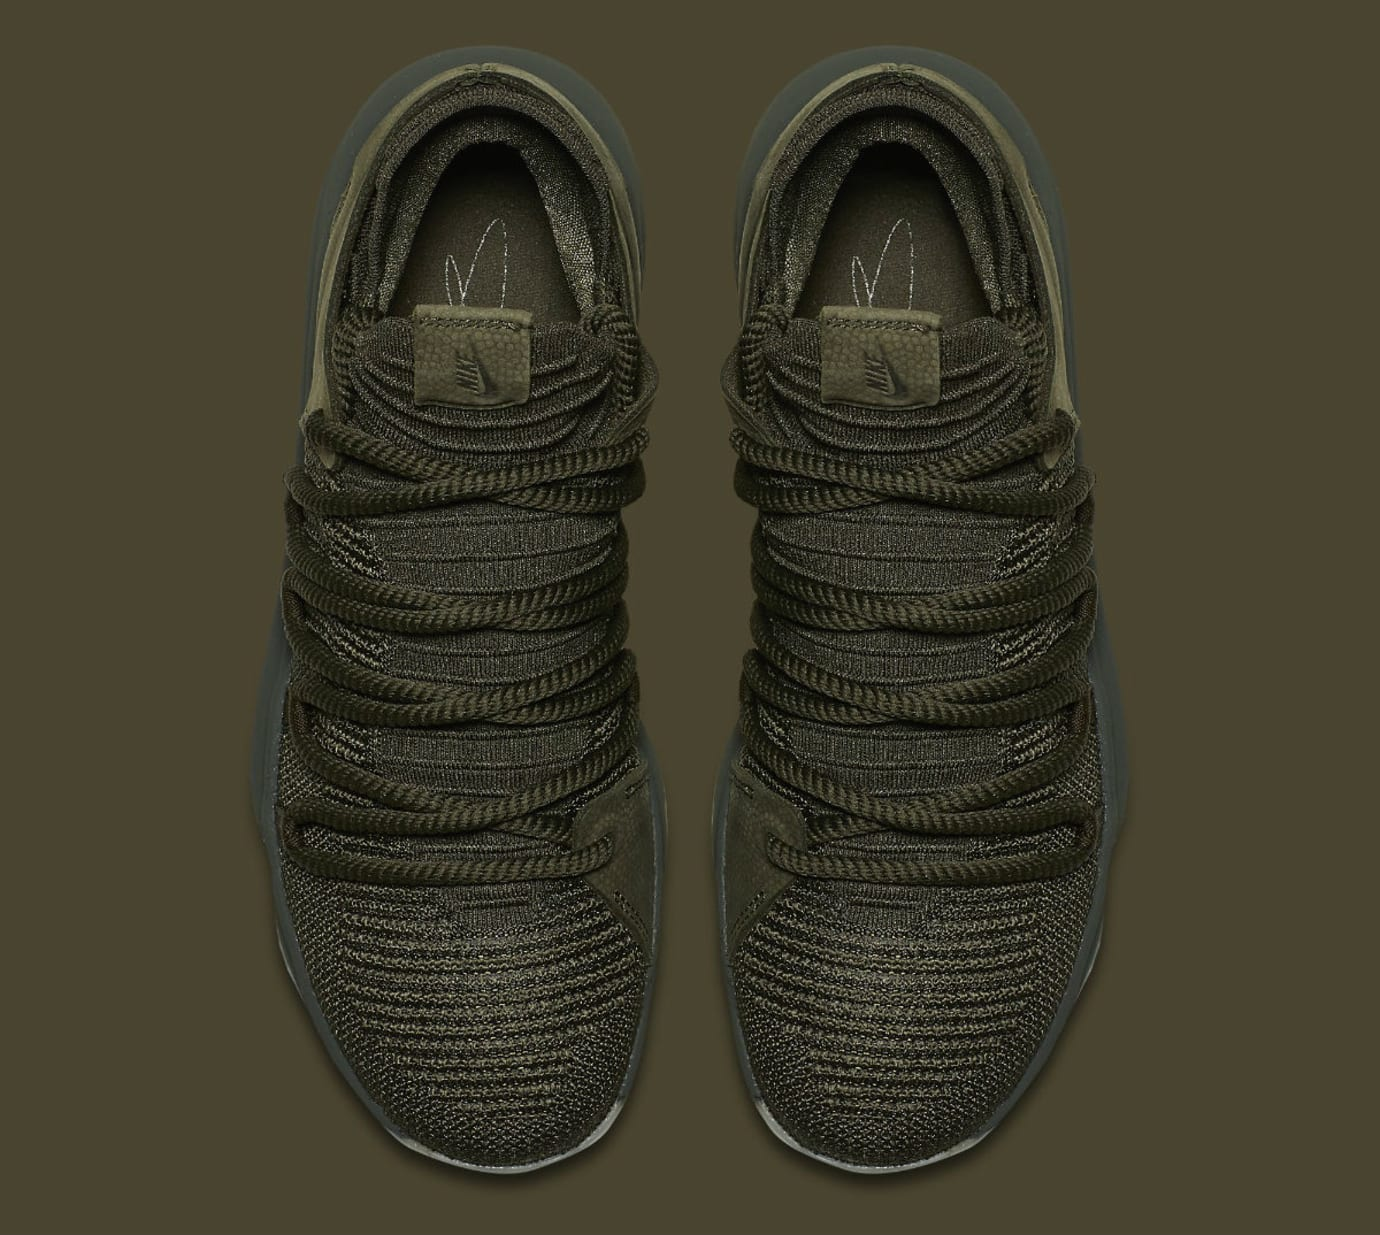 best sneakers d063d d6bc9 ... coupon code for nikelab kd 10 olive release date top 943298 900 fa252  fde29